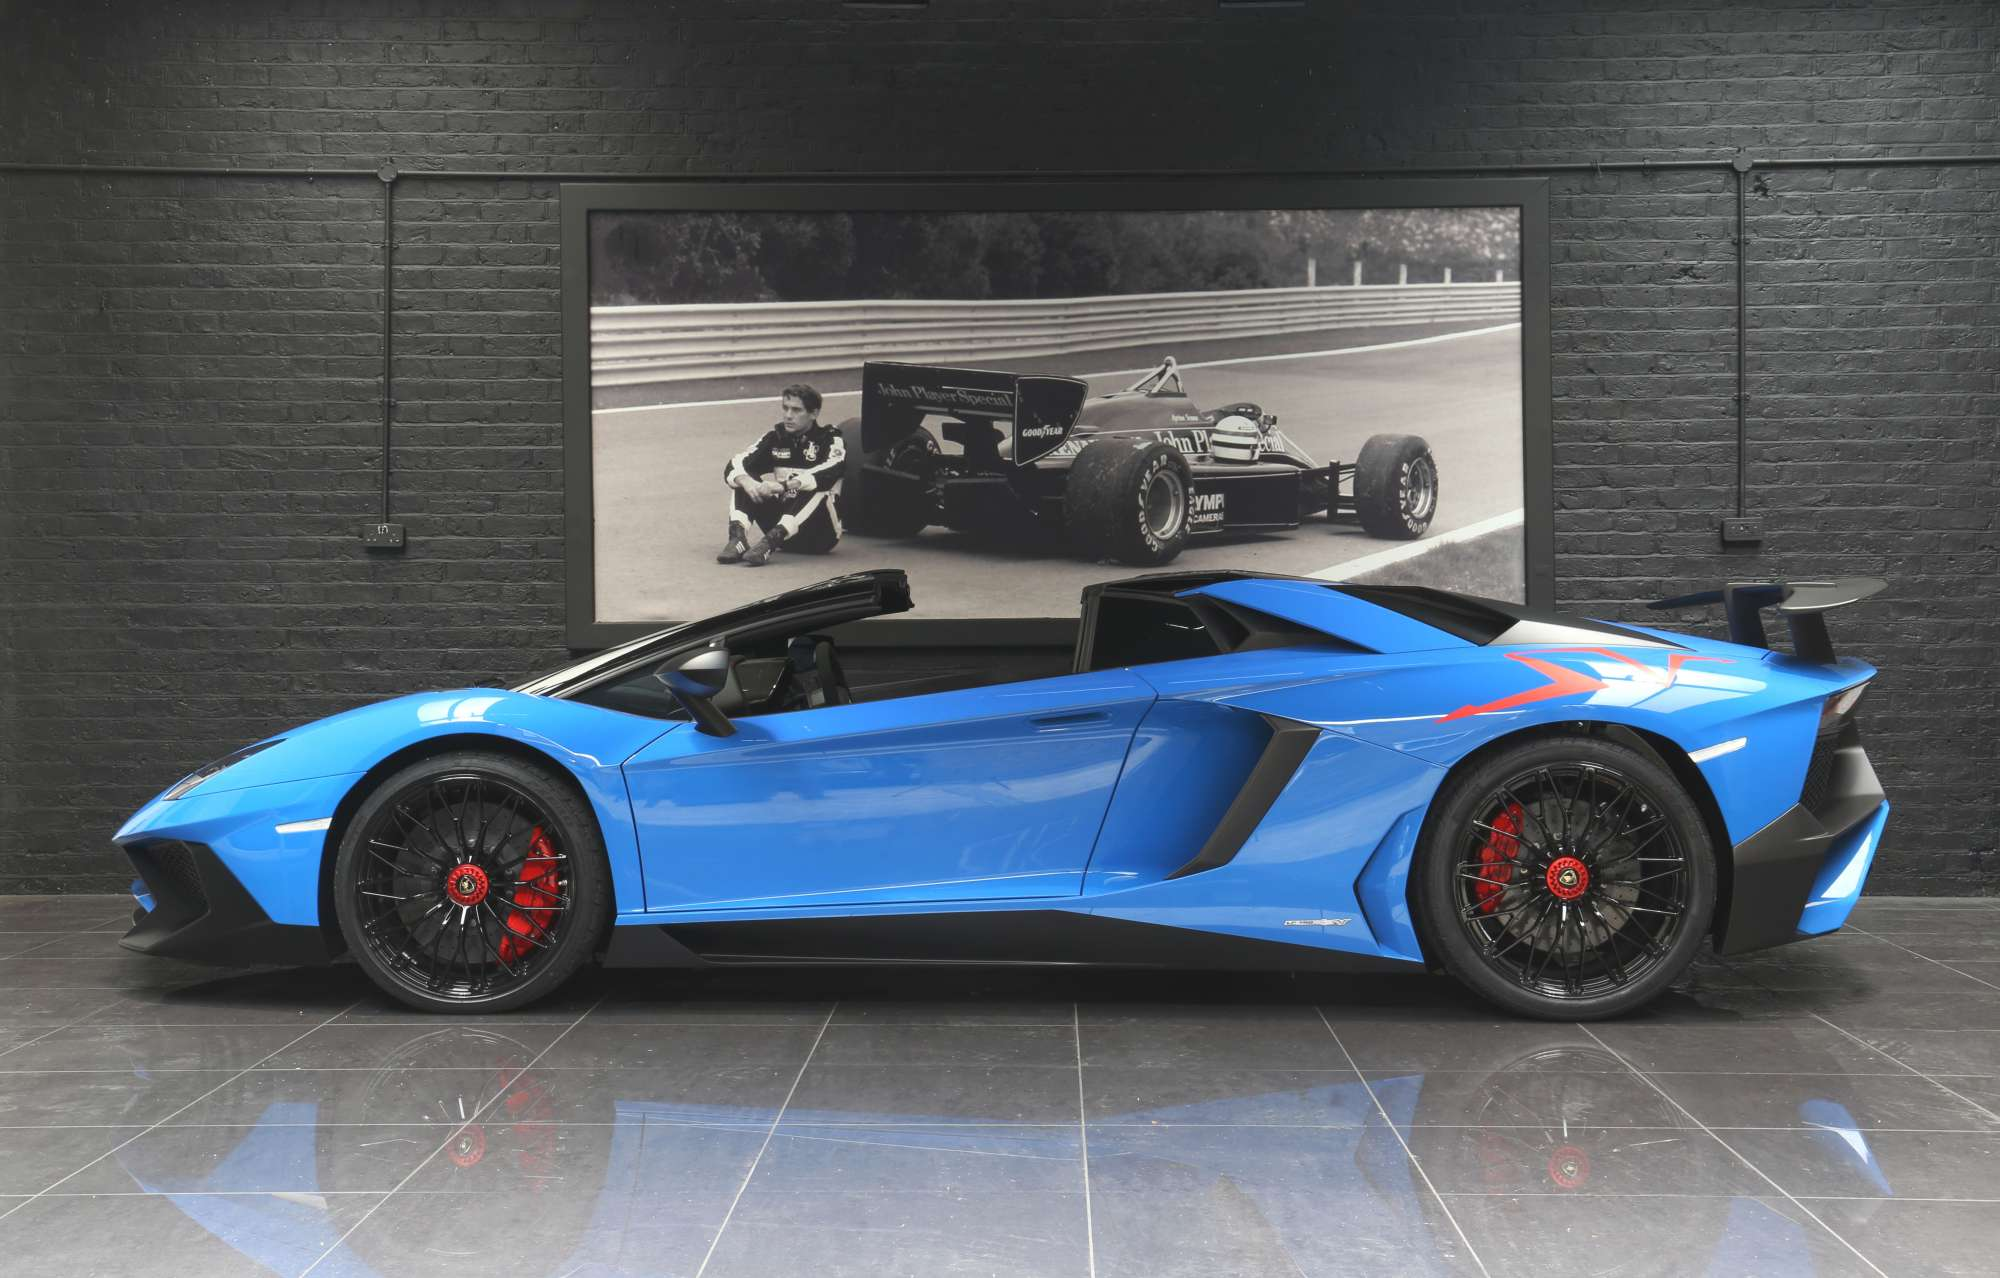 D And D Auto Sales >> LAMBORGHINI AVENTADOR LP750-4 SV ROADSTER - Pegasus Auto House